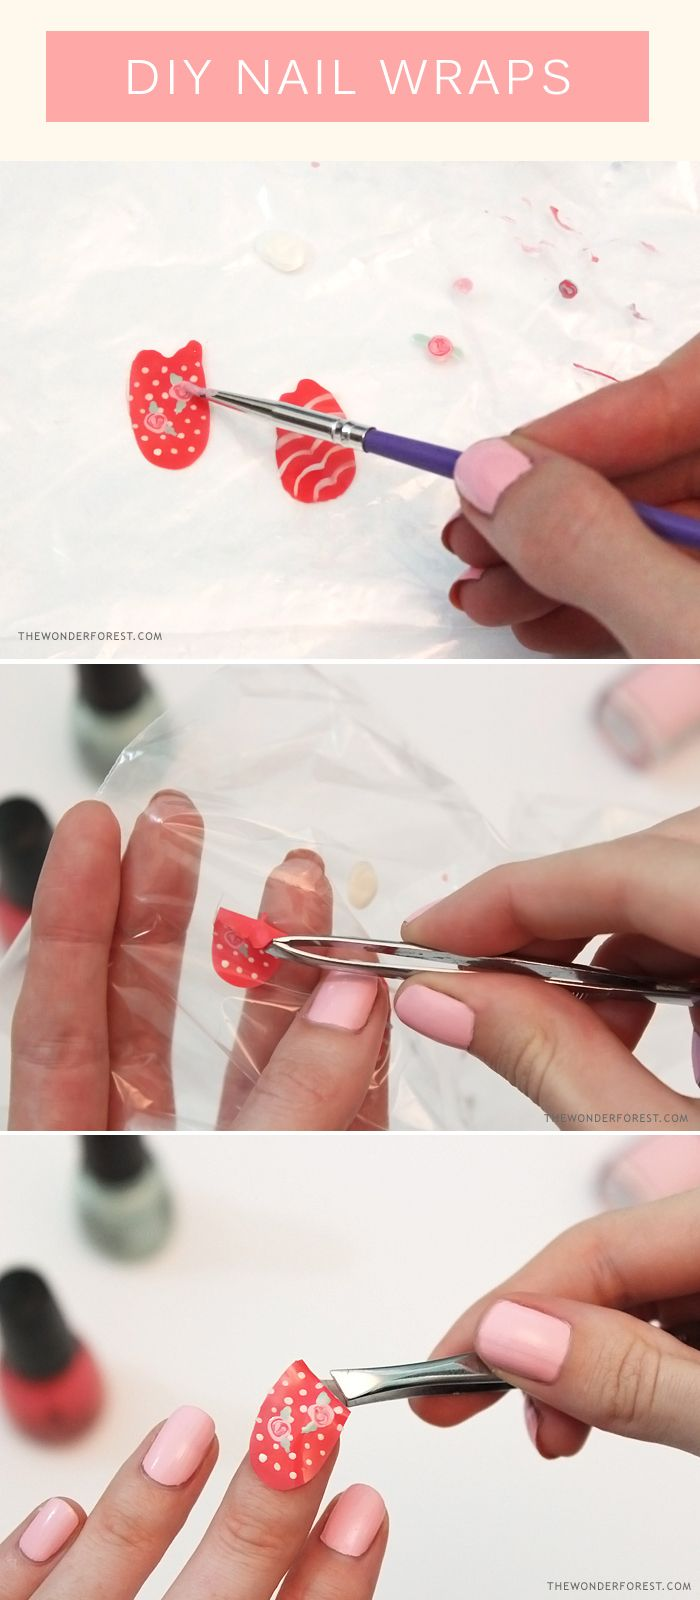 Make your own nail wraps with nail polish! No more wonky wrong-handed nail art ;)